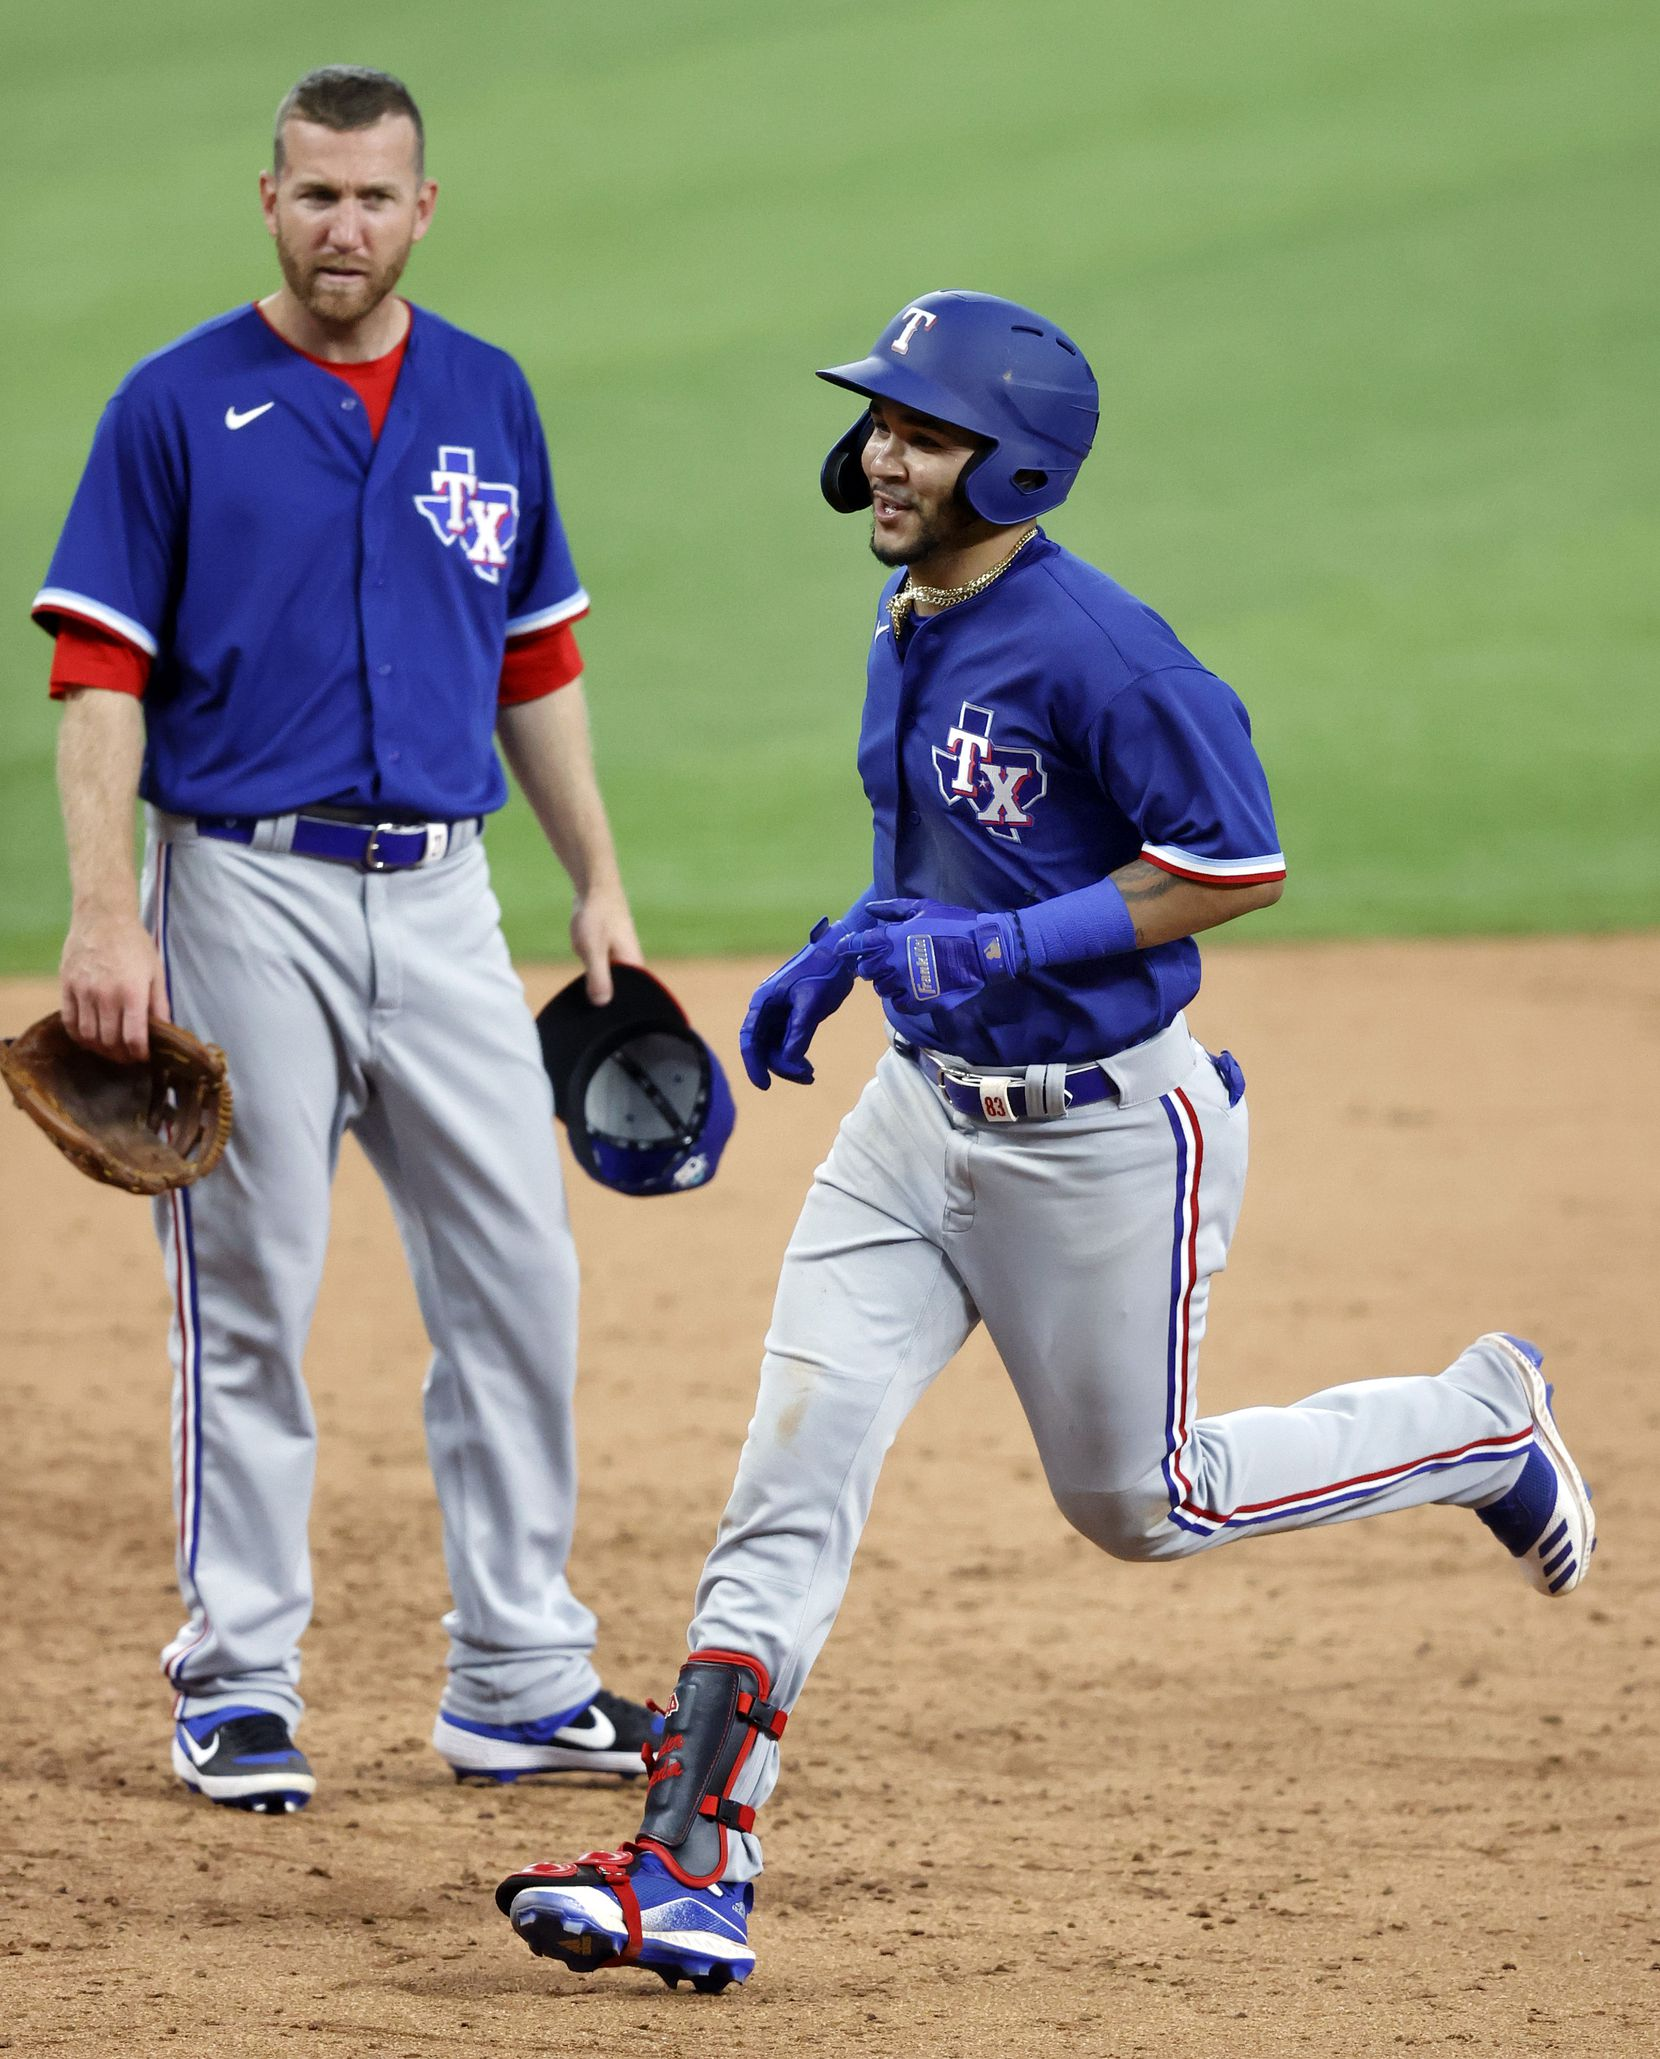 Texas Rangers Anderson Tejeda circles the bases after hitting a home run off of Edinson Volquez during an intrasquad game at Summer Camp inside Globe Life Field in Arlington, Texas, Friday, July 10, 2020. (Tom Fox/The Dallas Morning News)